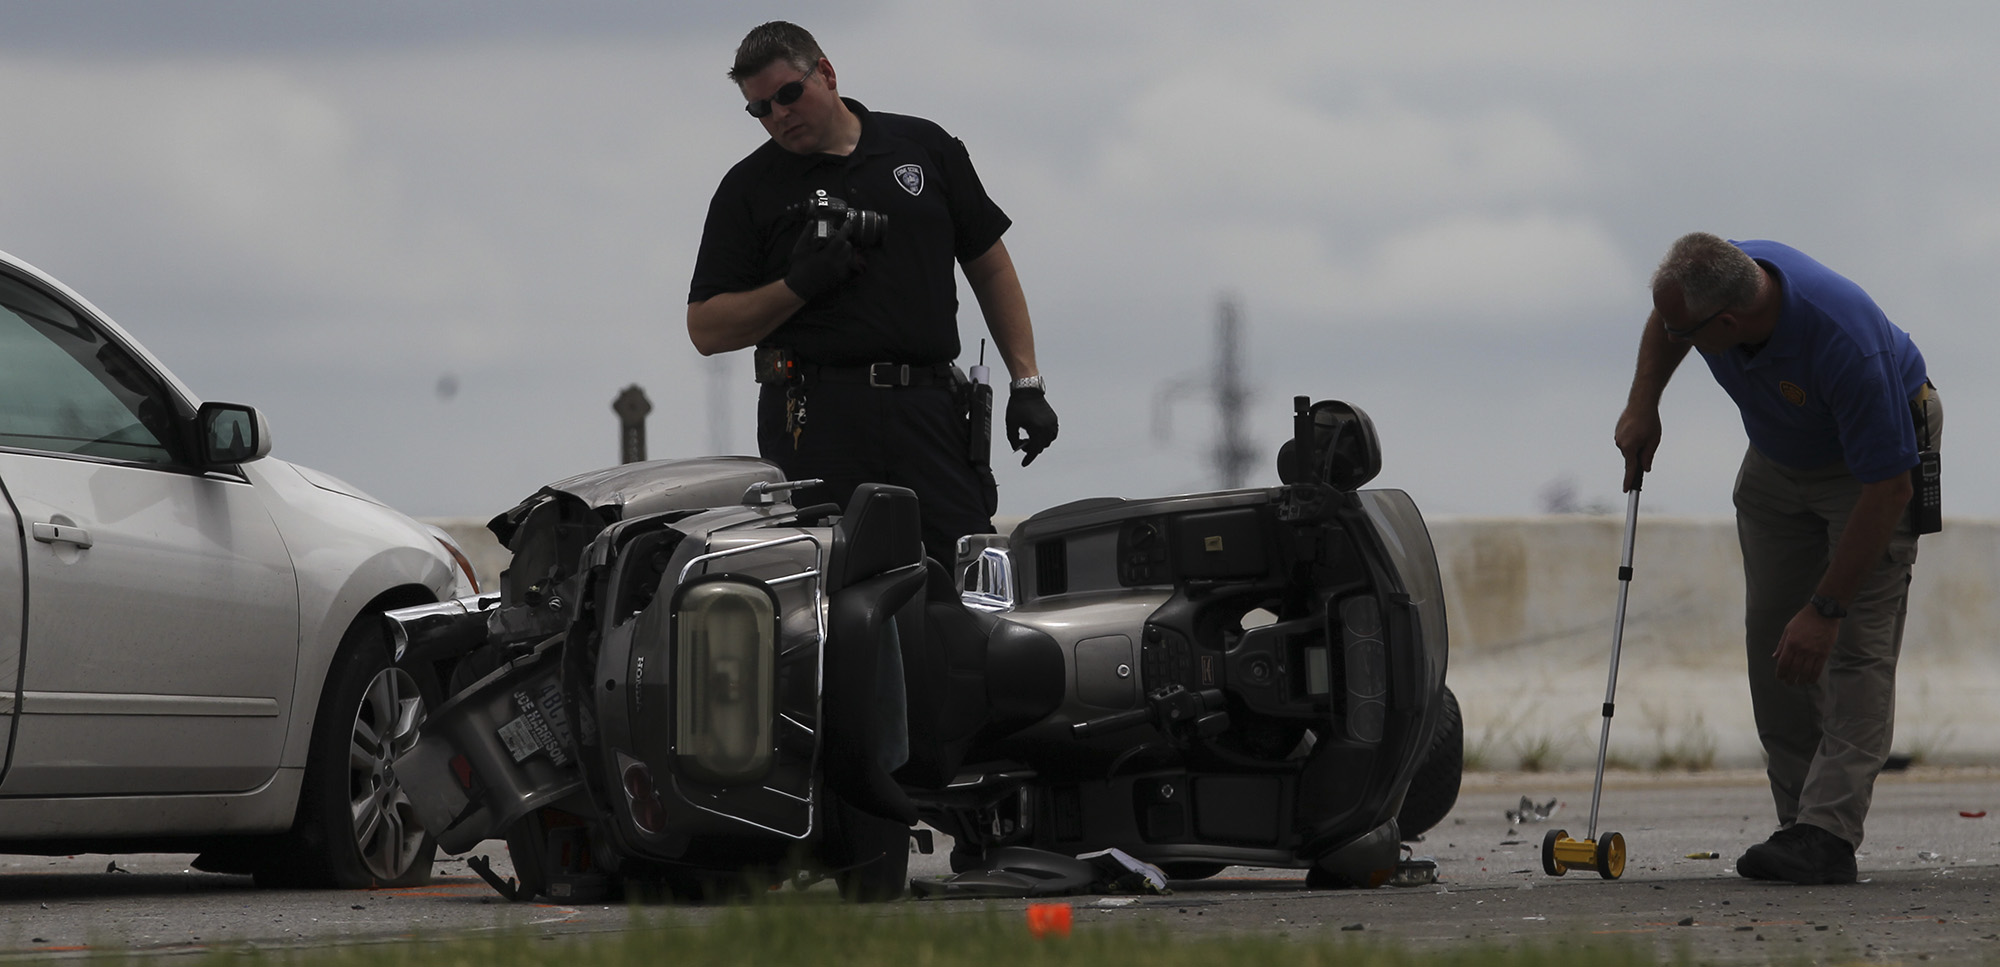 North East Isd Officer Hit By Suv In San Antonio San